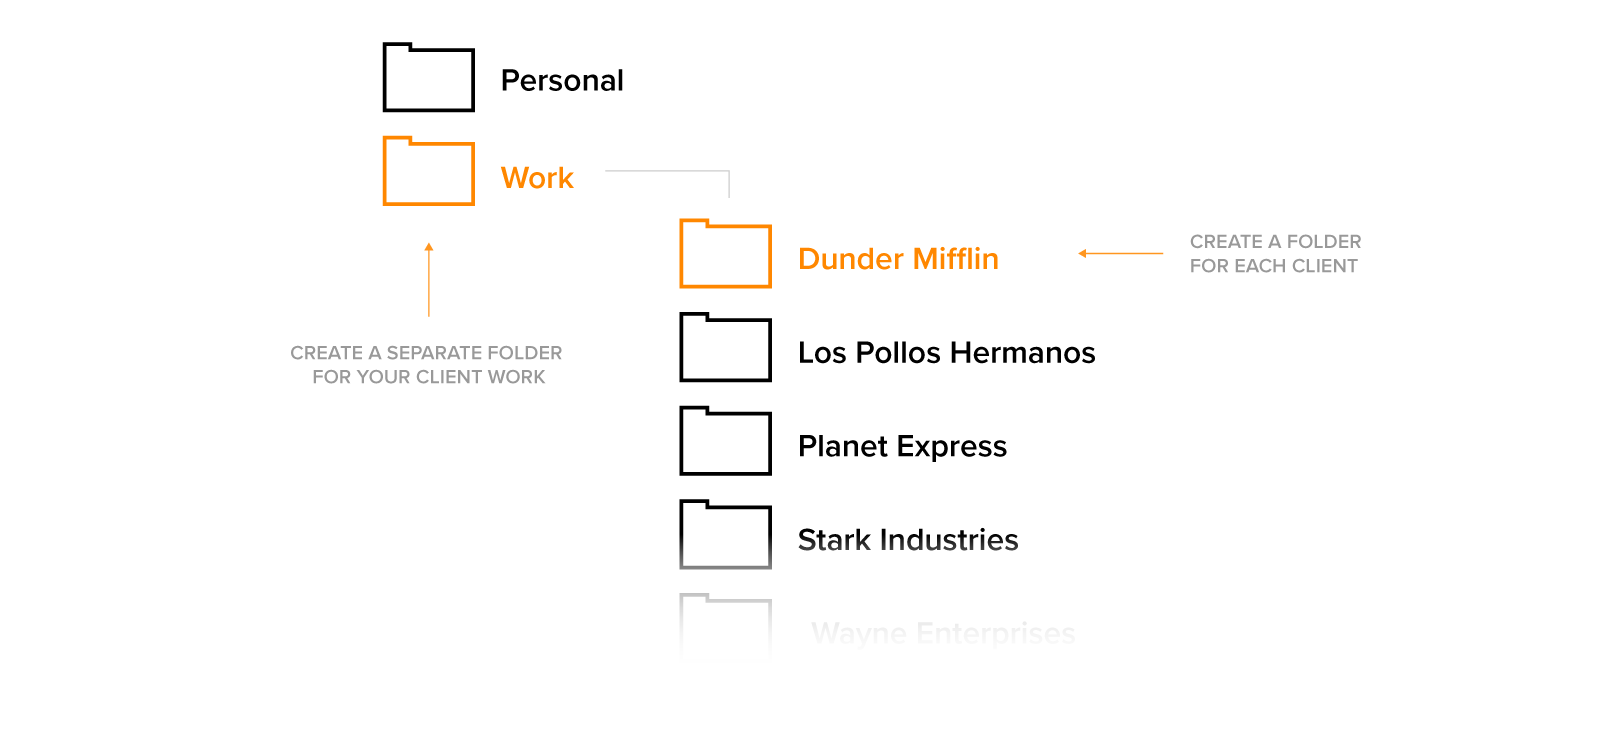 Example of work and client folder structure